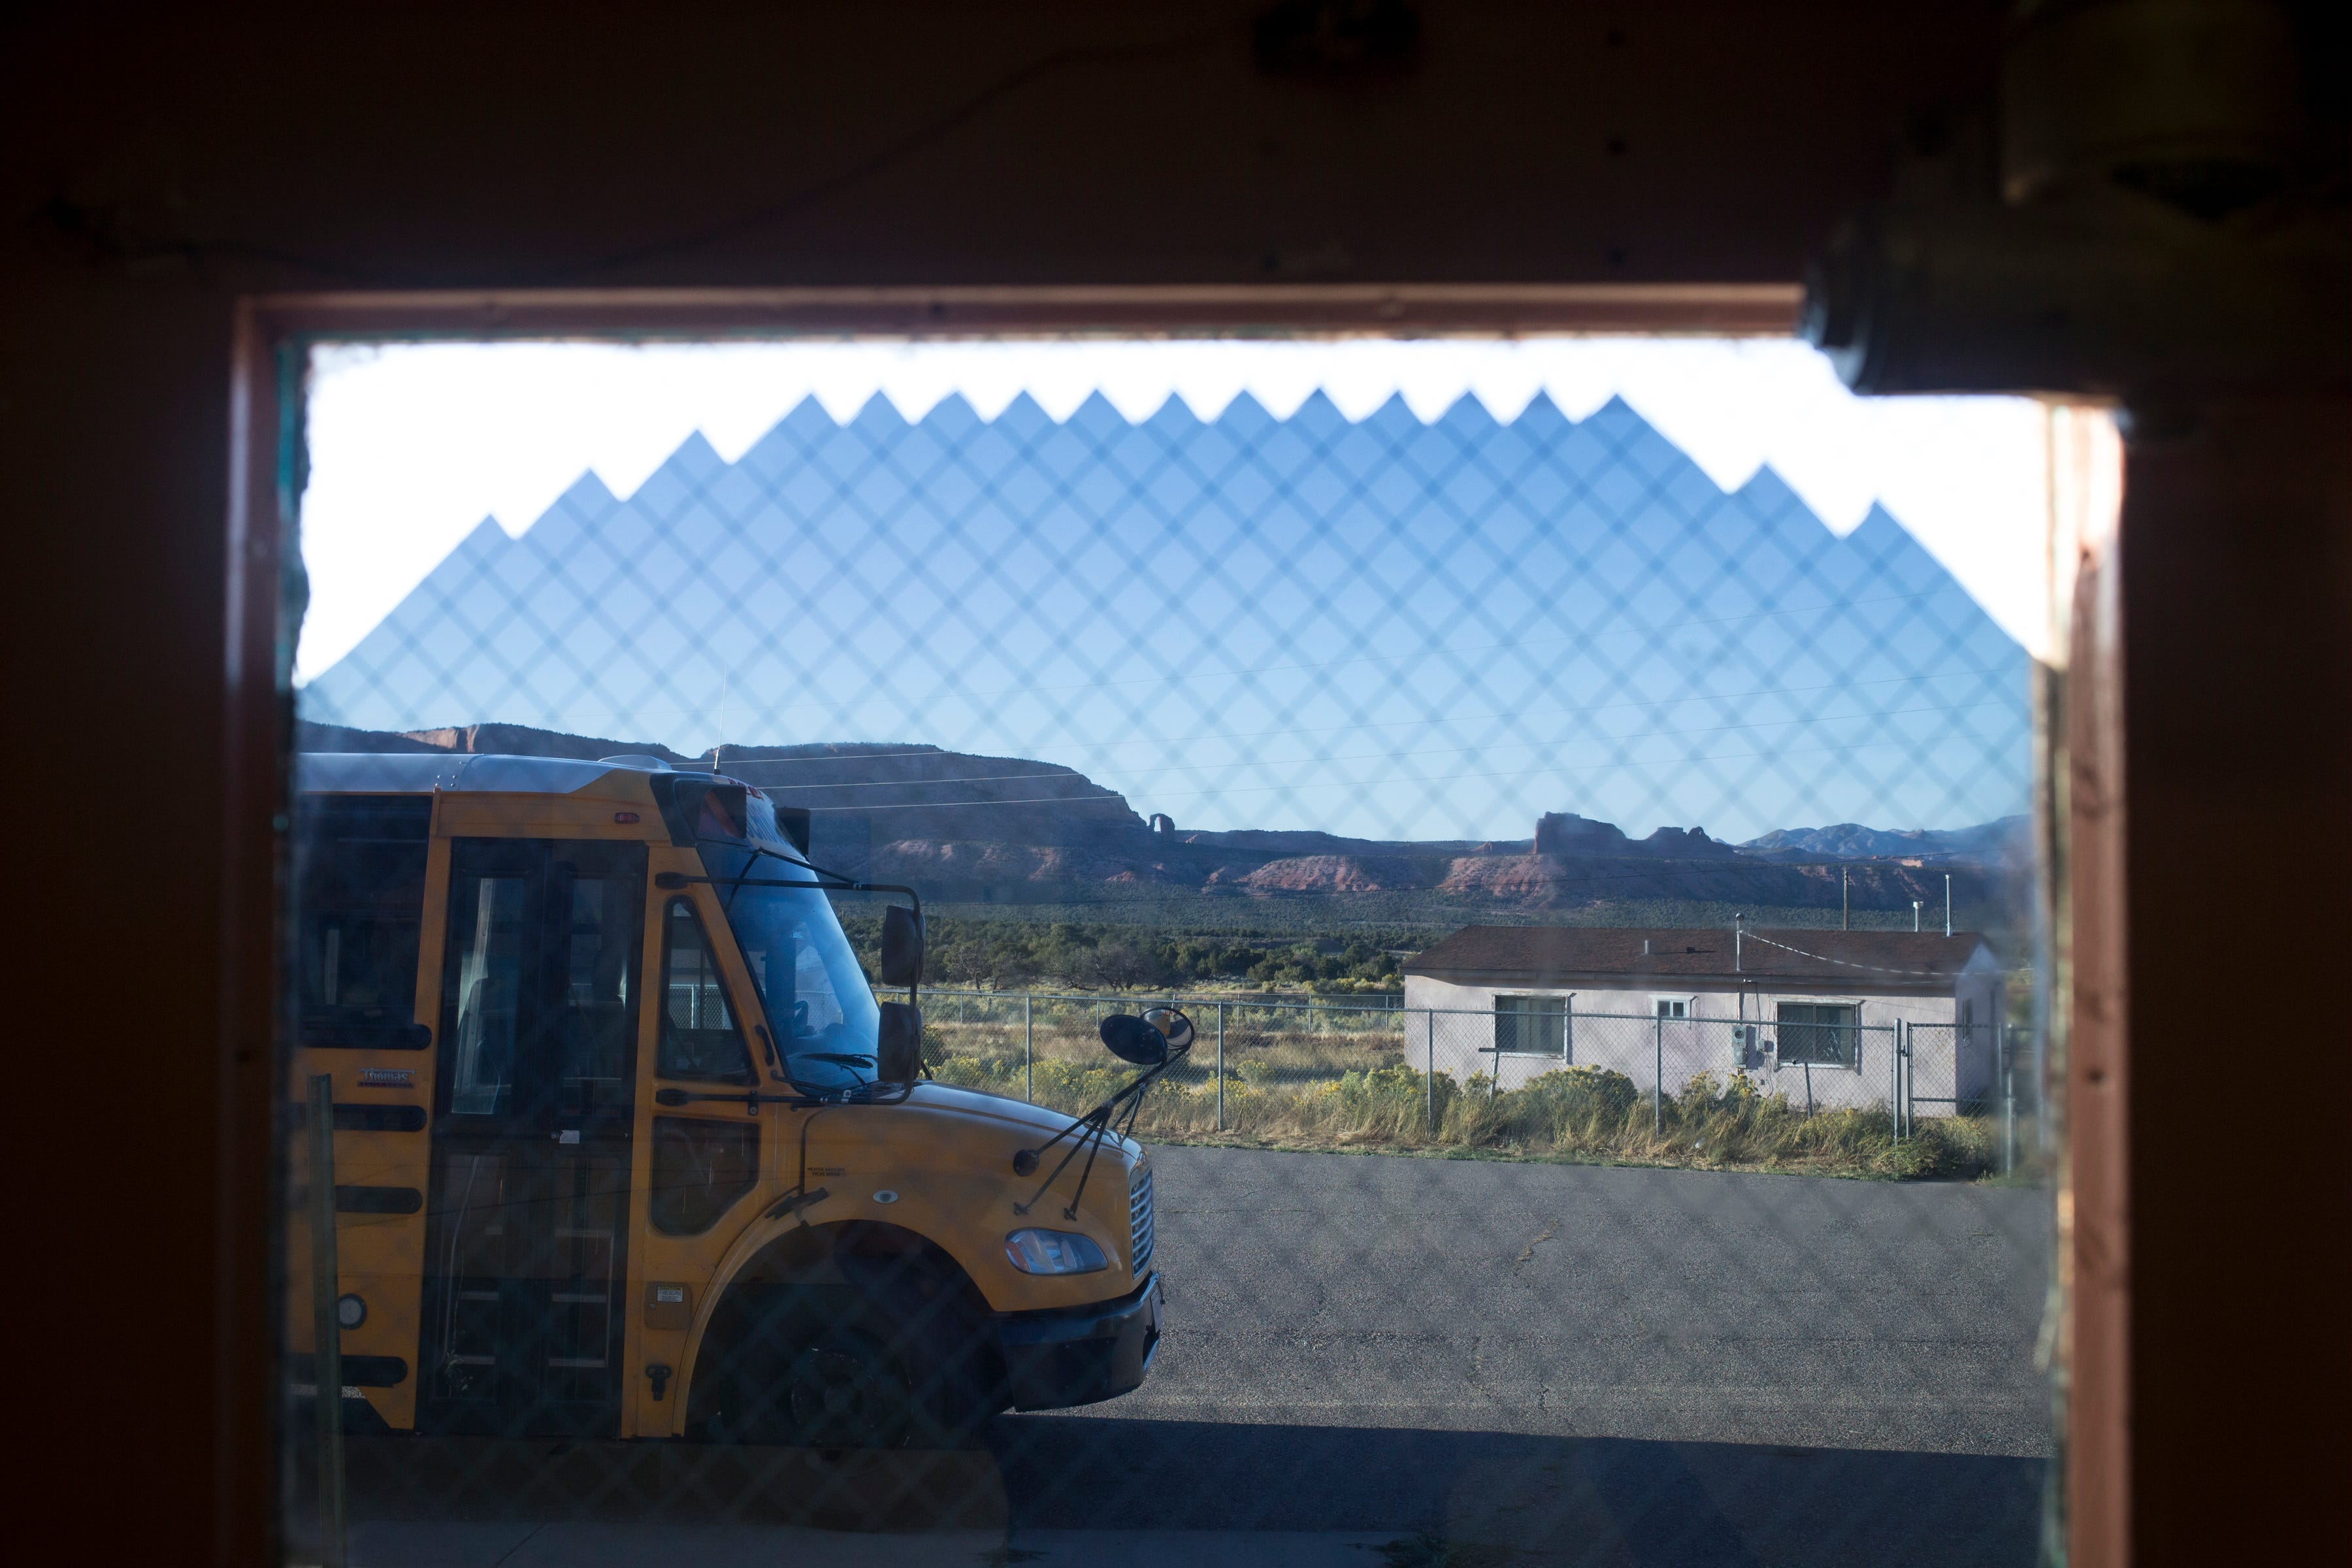 A bus and a condemned staff house are shown Oct. 2, 2019, at Cove Day School, a school run by the BIE in Cove, Arizona.